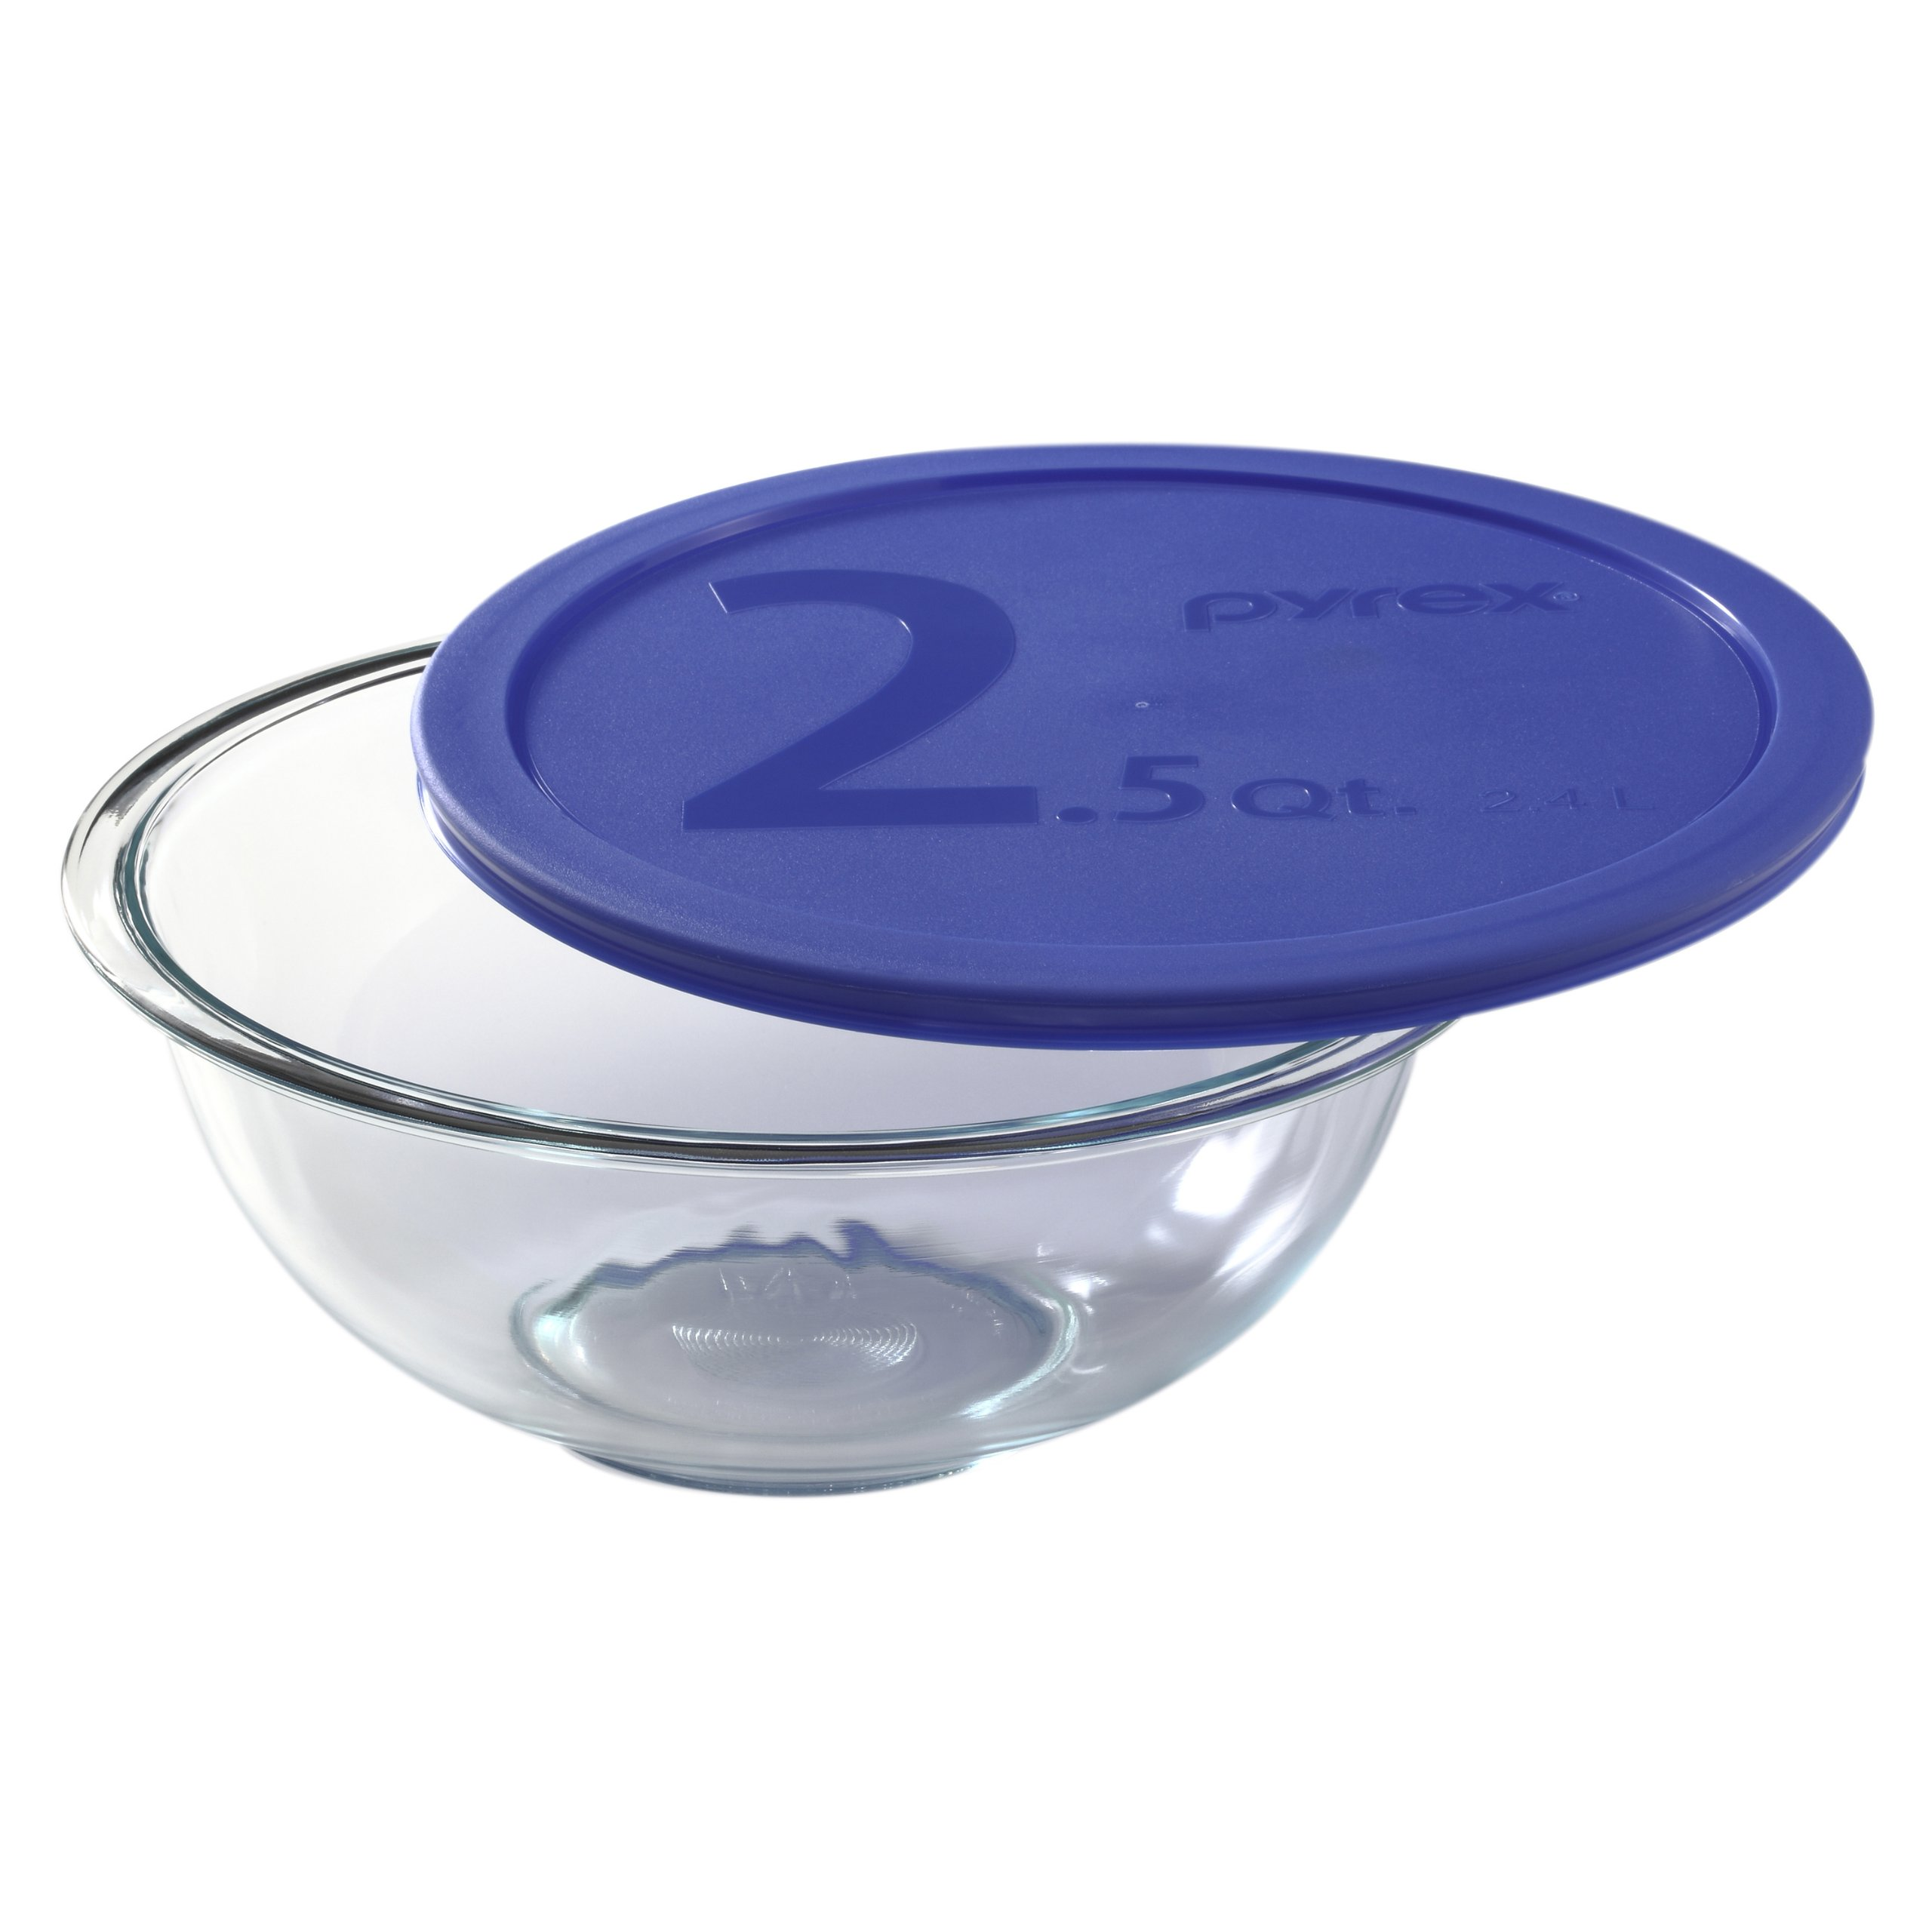 Pyrex Smart Essentials 2.5-Quart Glass Mixing Bowl